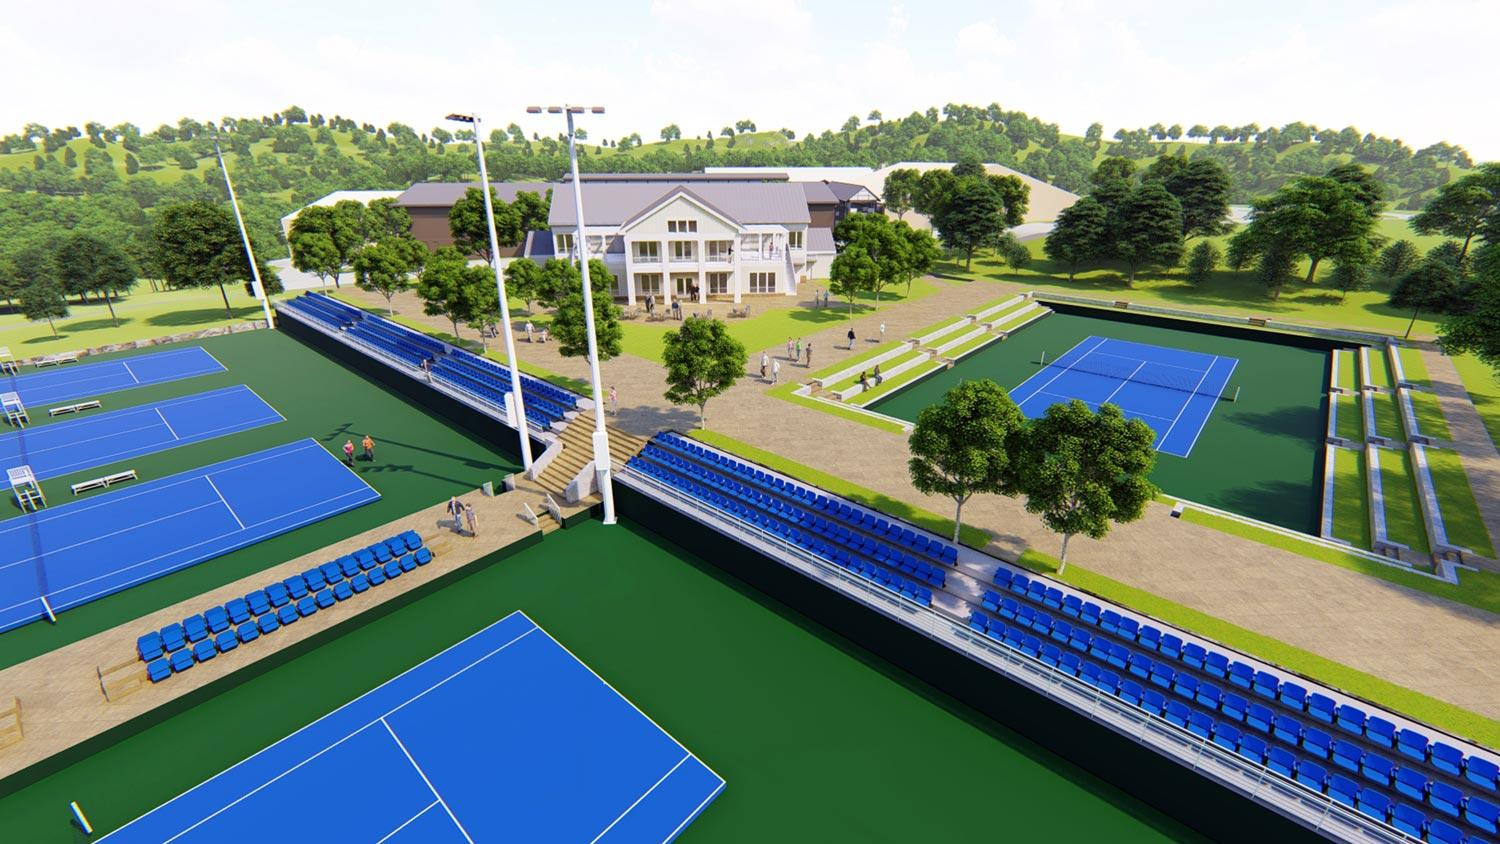 The new center, located adjacent to the Boar's Head Sports Club, will enhance training opportunities, recruiting and competition for UVA Tennis.